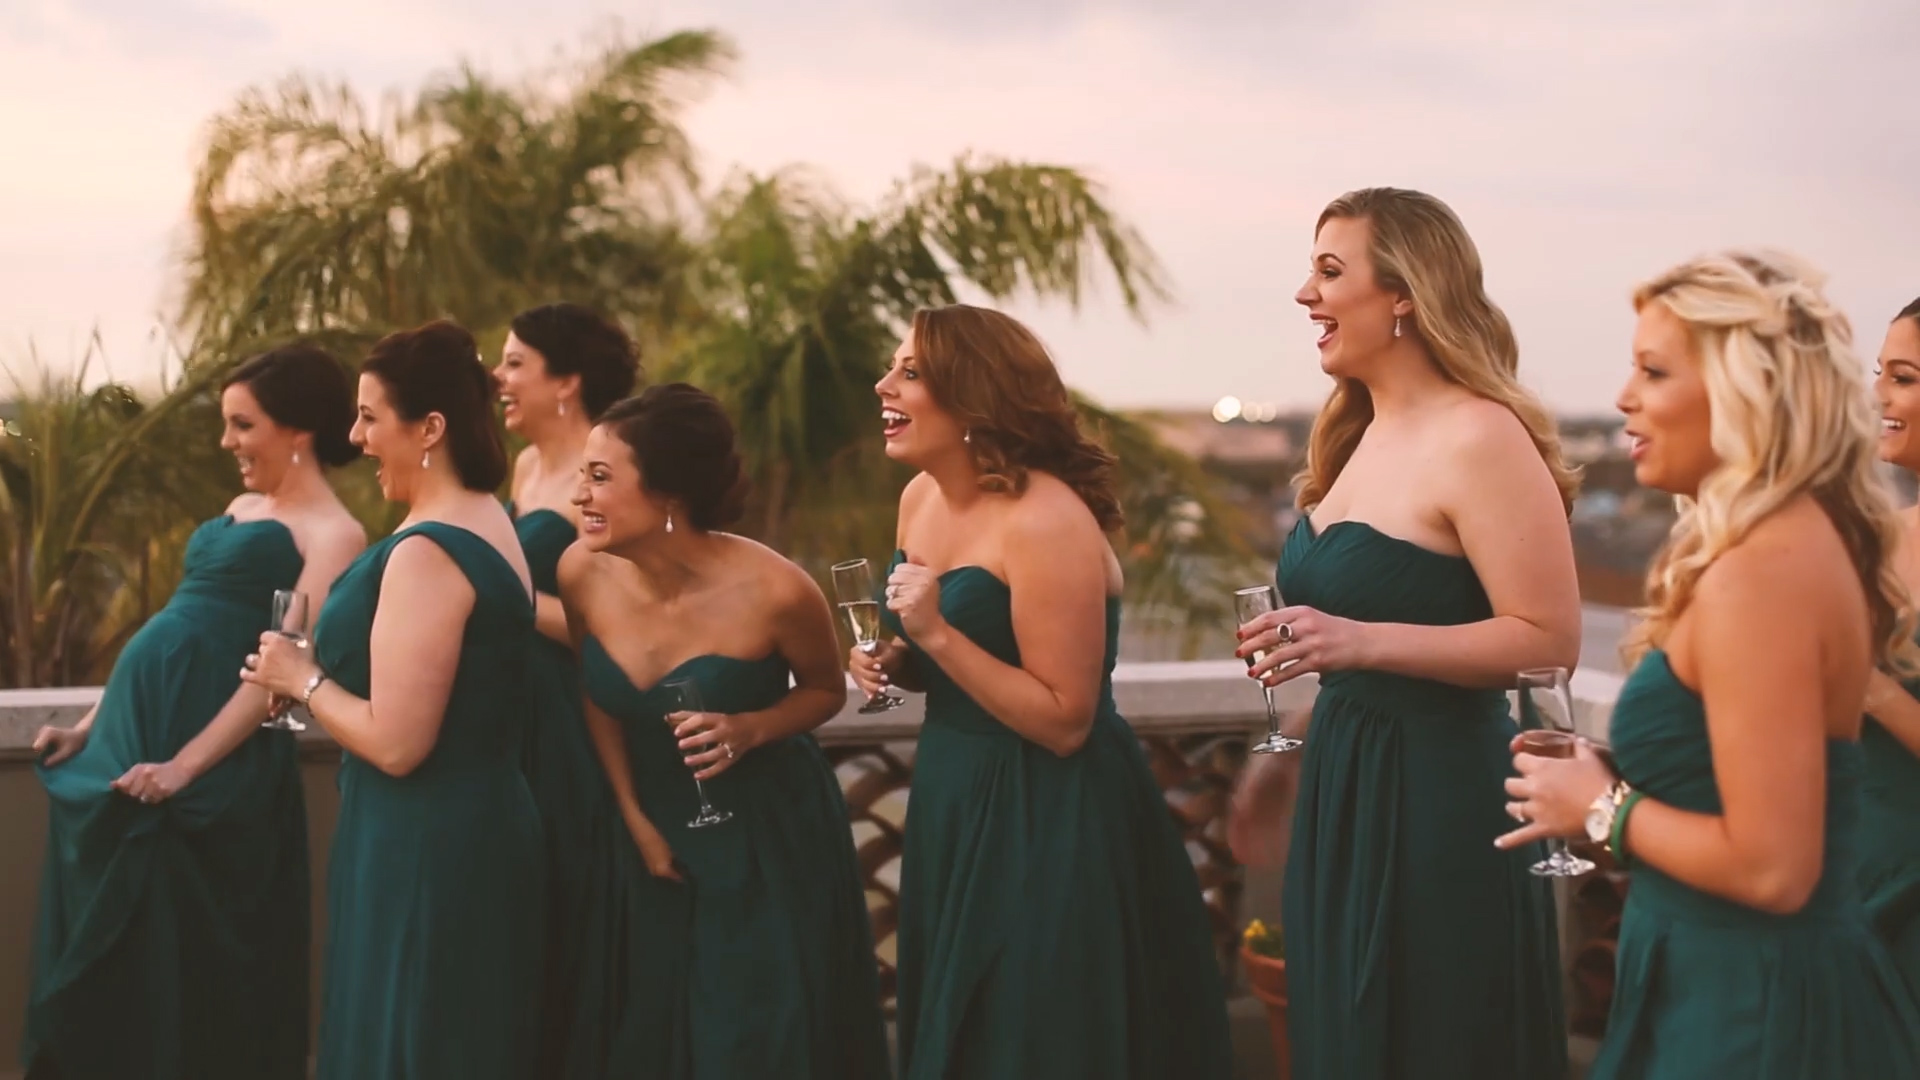 Rachel's bridesmaids were blown away when they saw her in her gown for the first time.